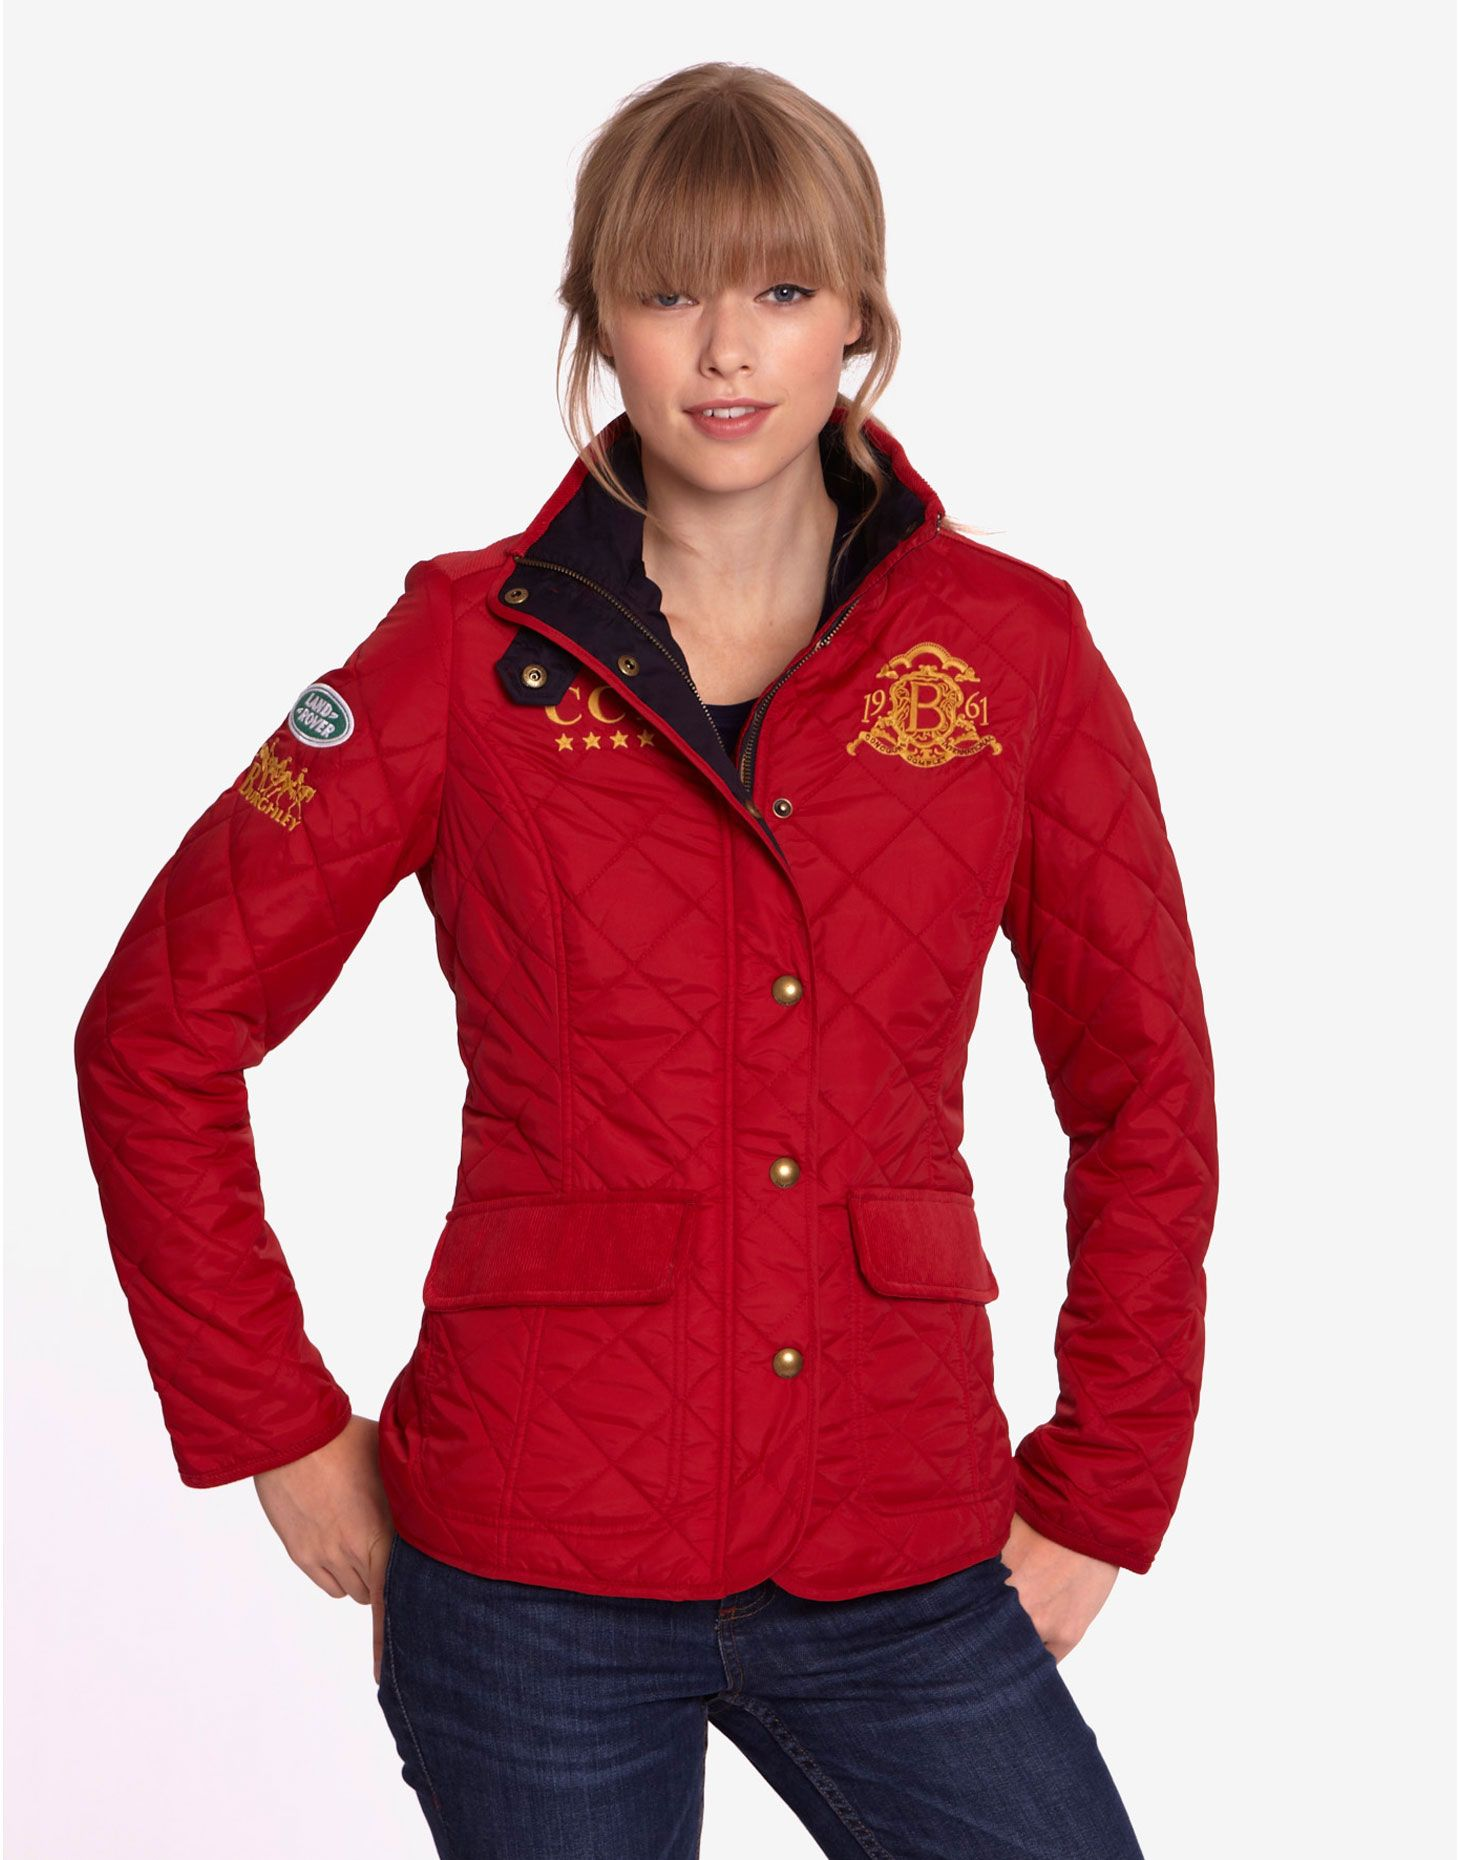 Women S Official Burhley Horse Trials Quilted Jacket Do Want [ 1860 x 1460 Pixel ]